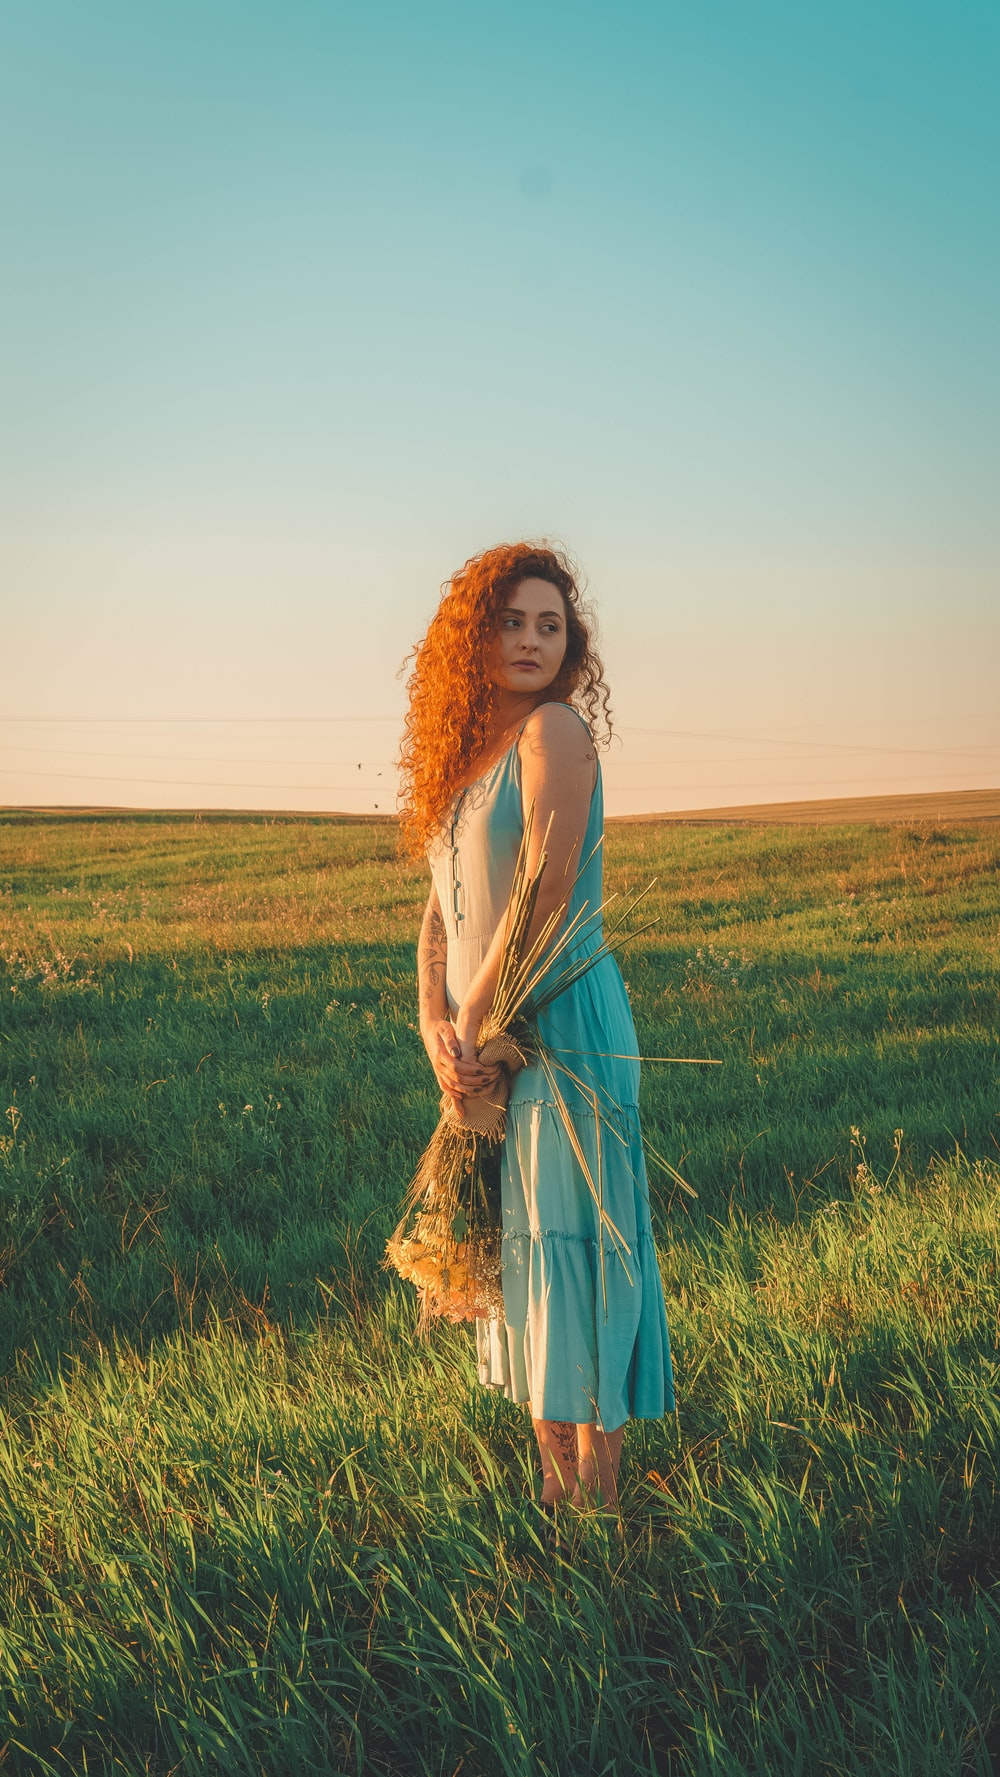 woman in blue sleeveless dress standing on green grass field during daytime